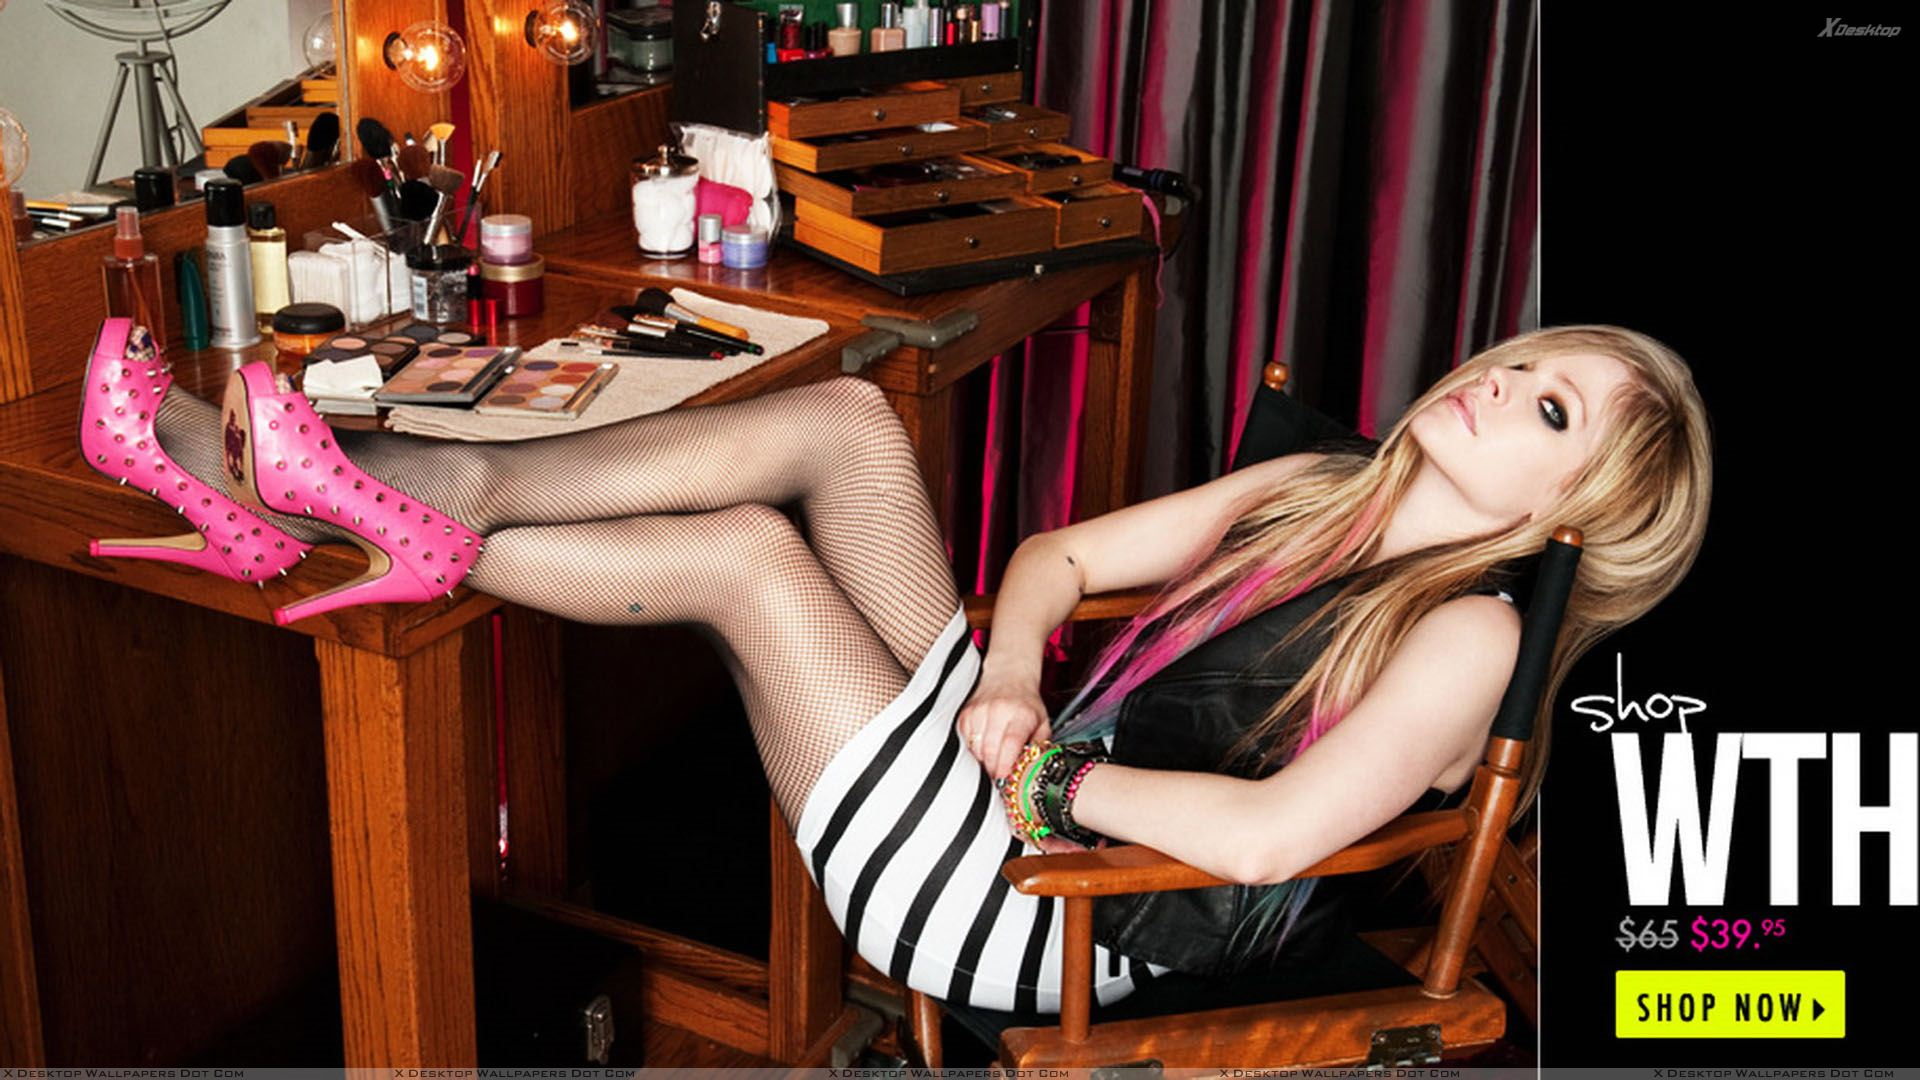 Avril lavigne sitting on chair at abbey dawn 2012 wallpaper you are viewing wallpaper titled avril lavigne voltagebd Gallery